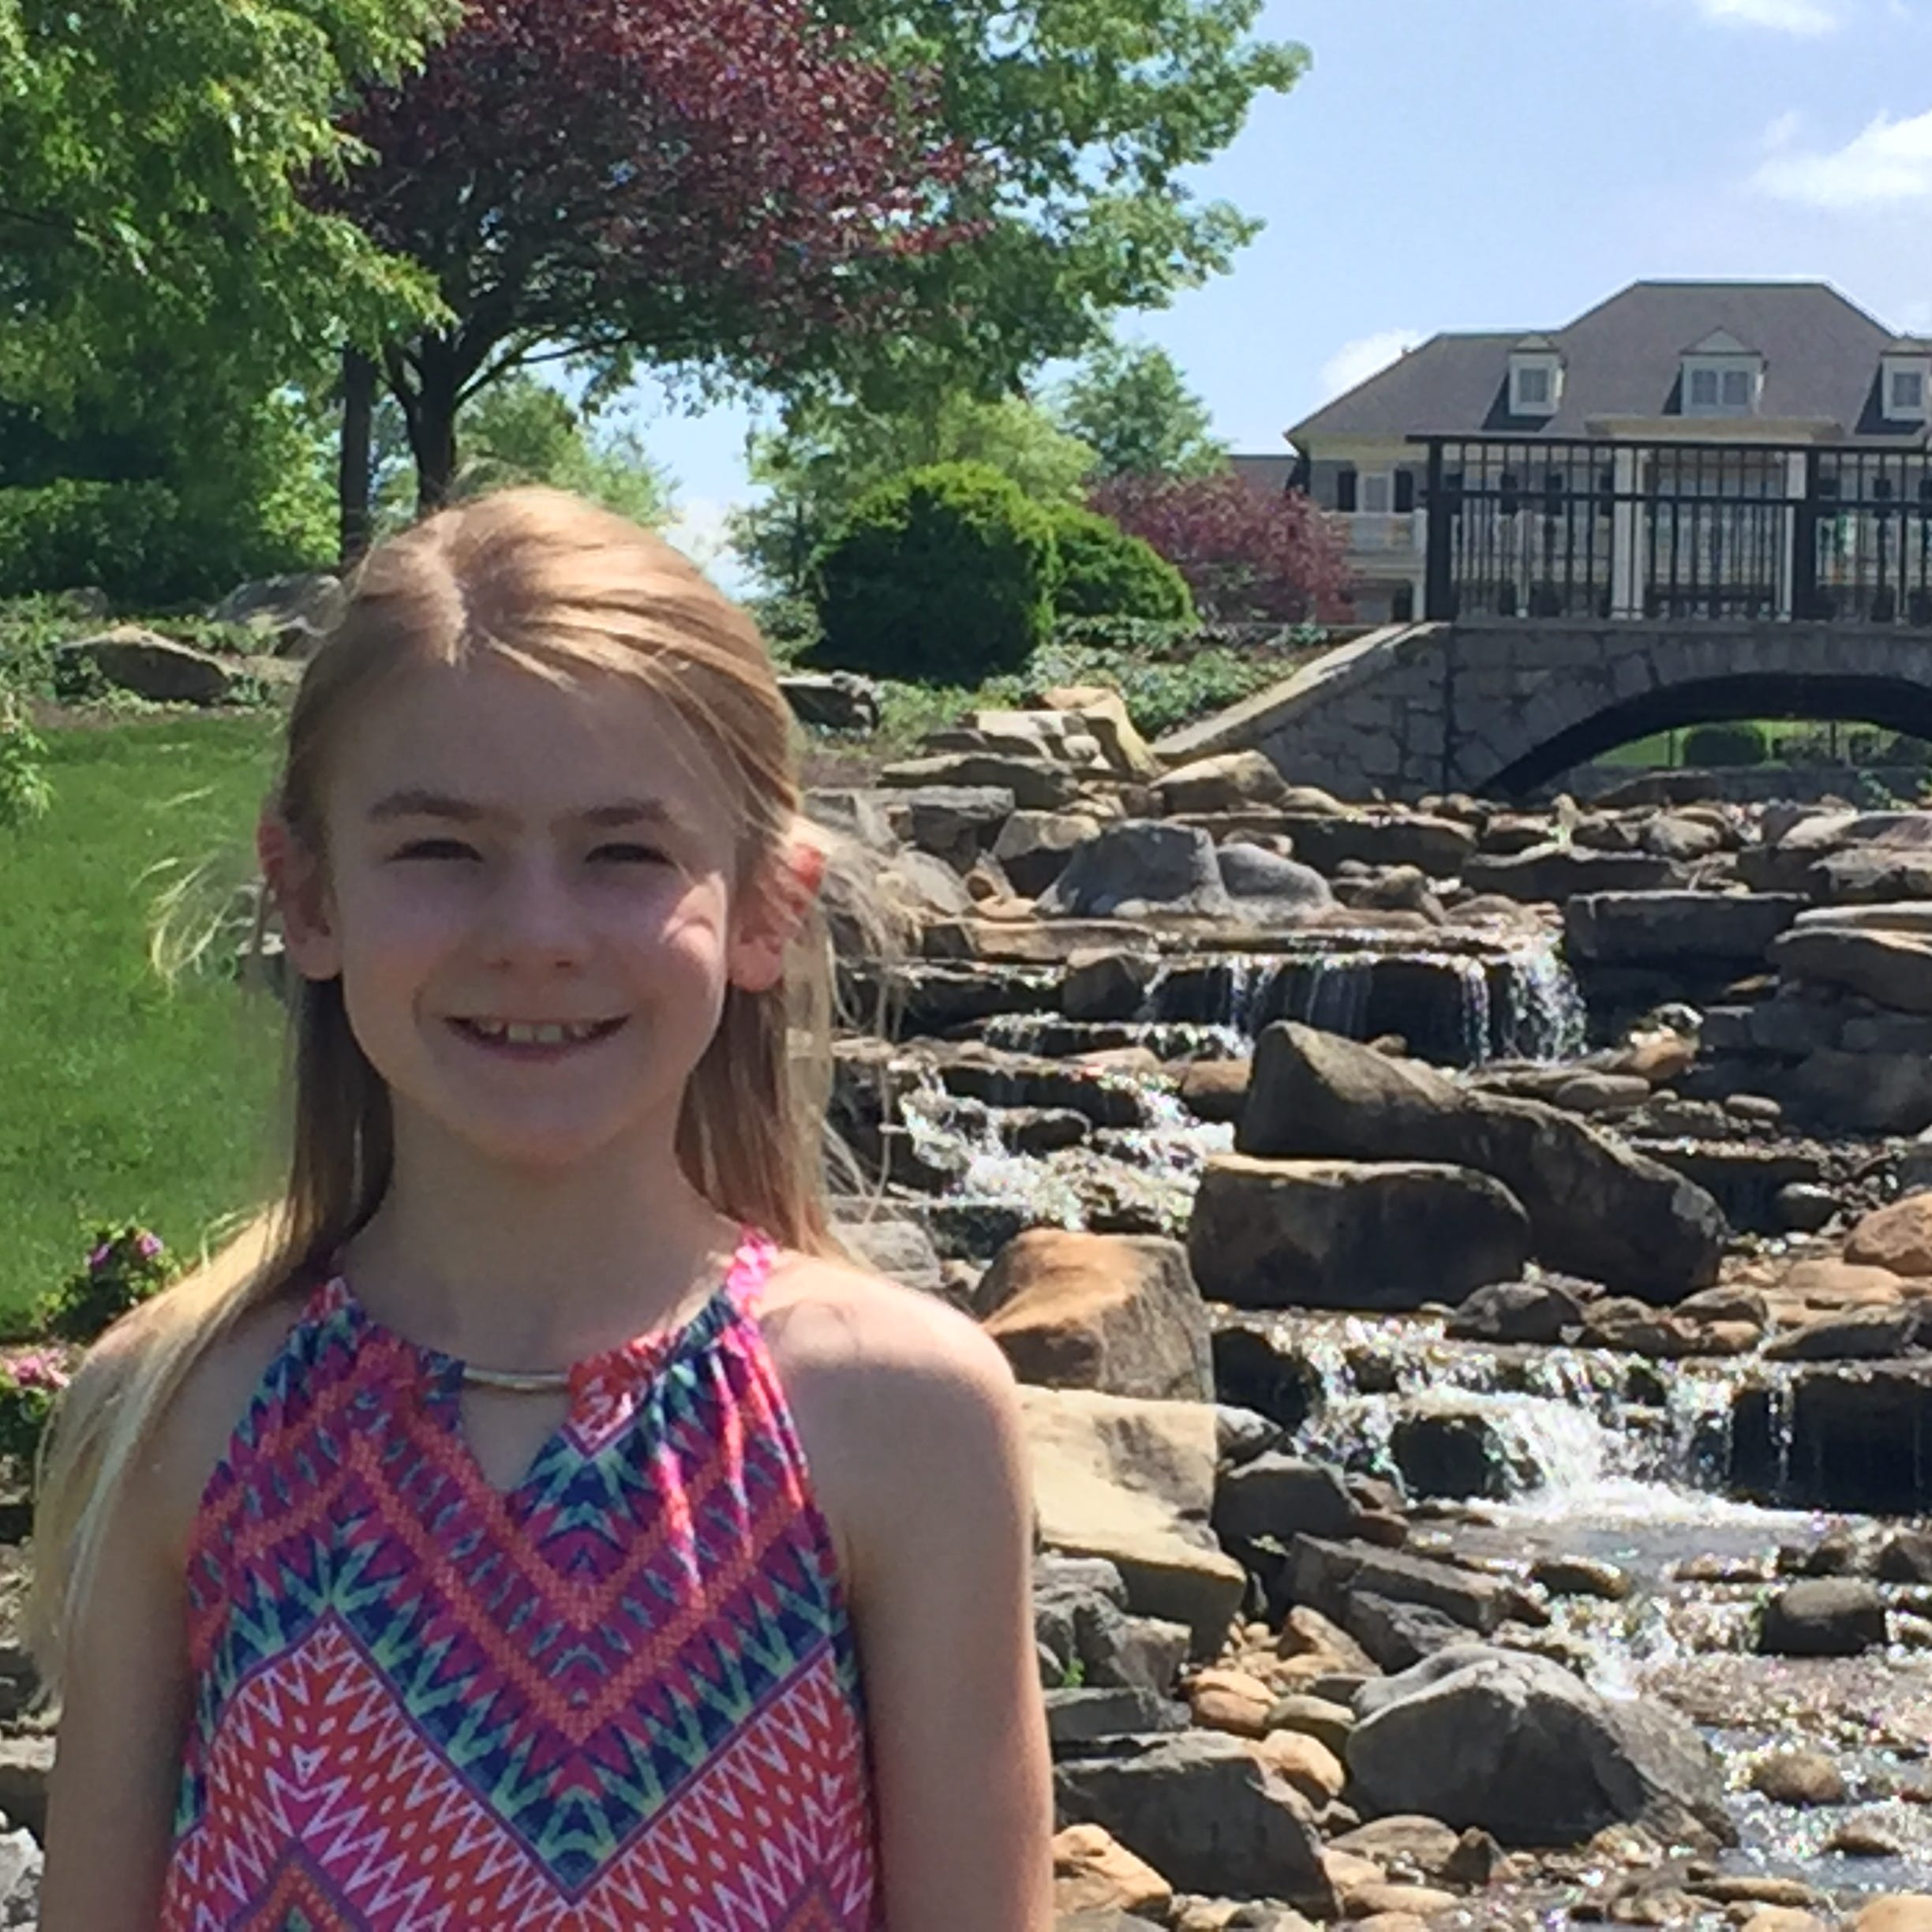 This 9-year-old girl is running for Farragut alderman, wants to bring dinosaurs to parks